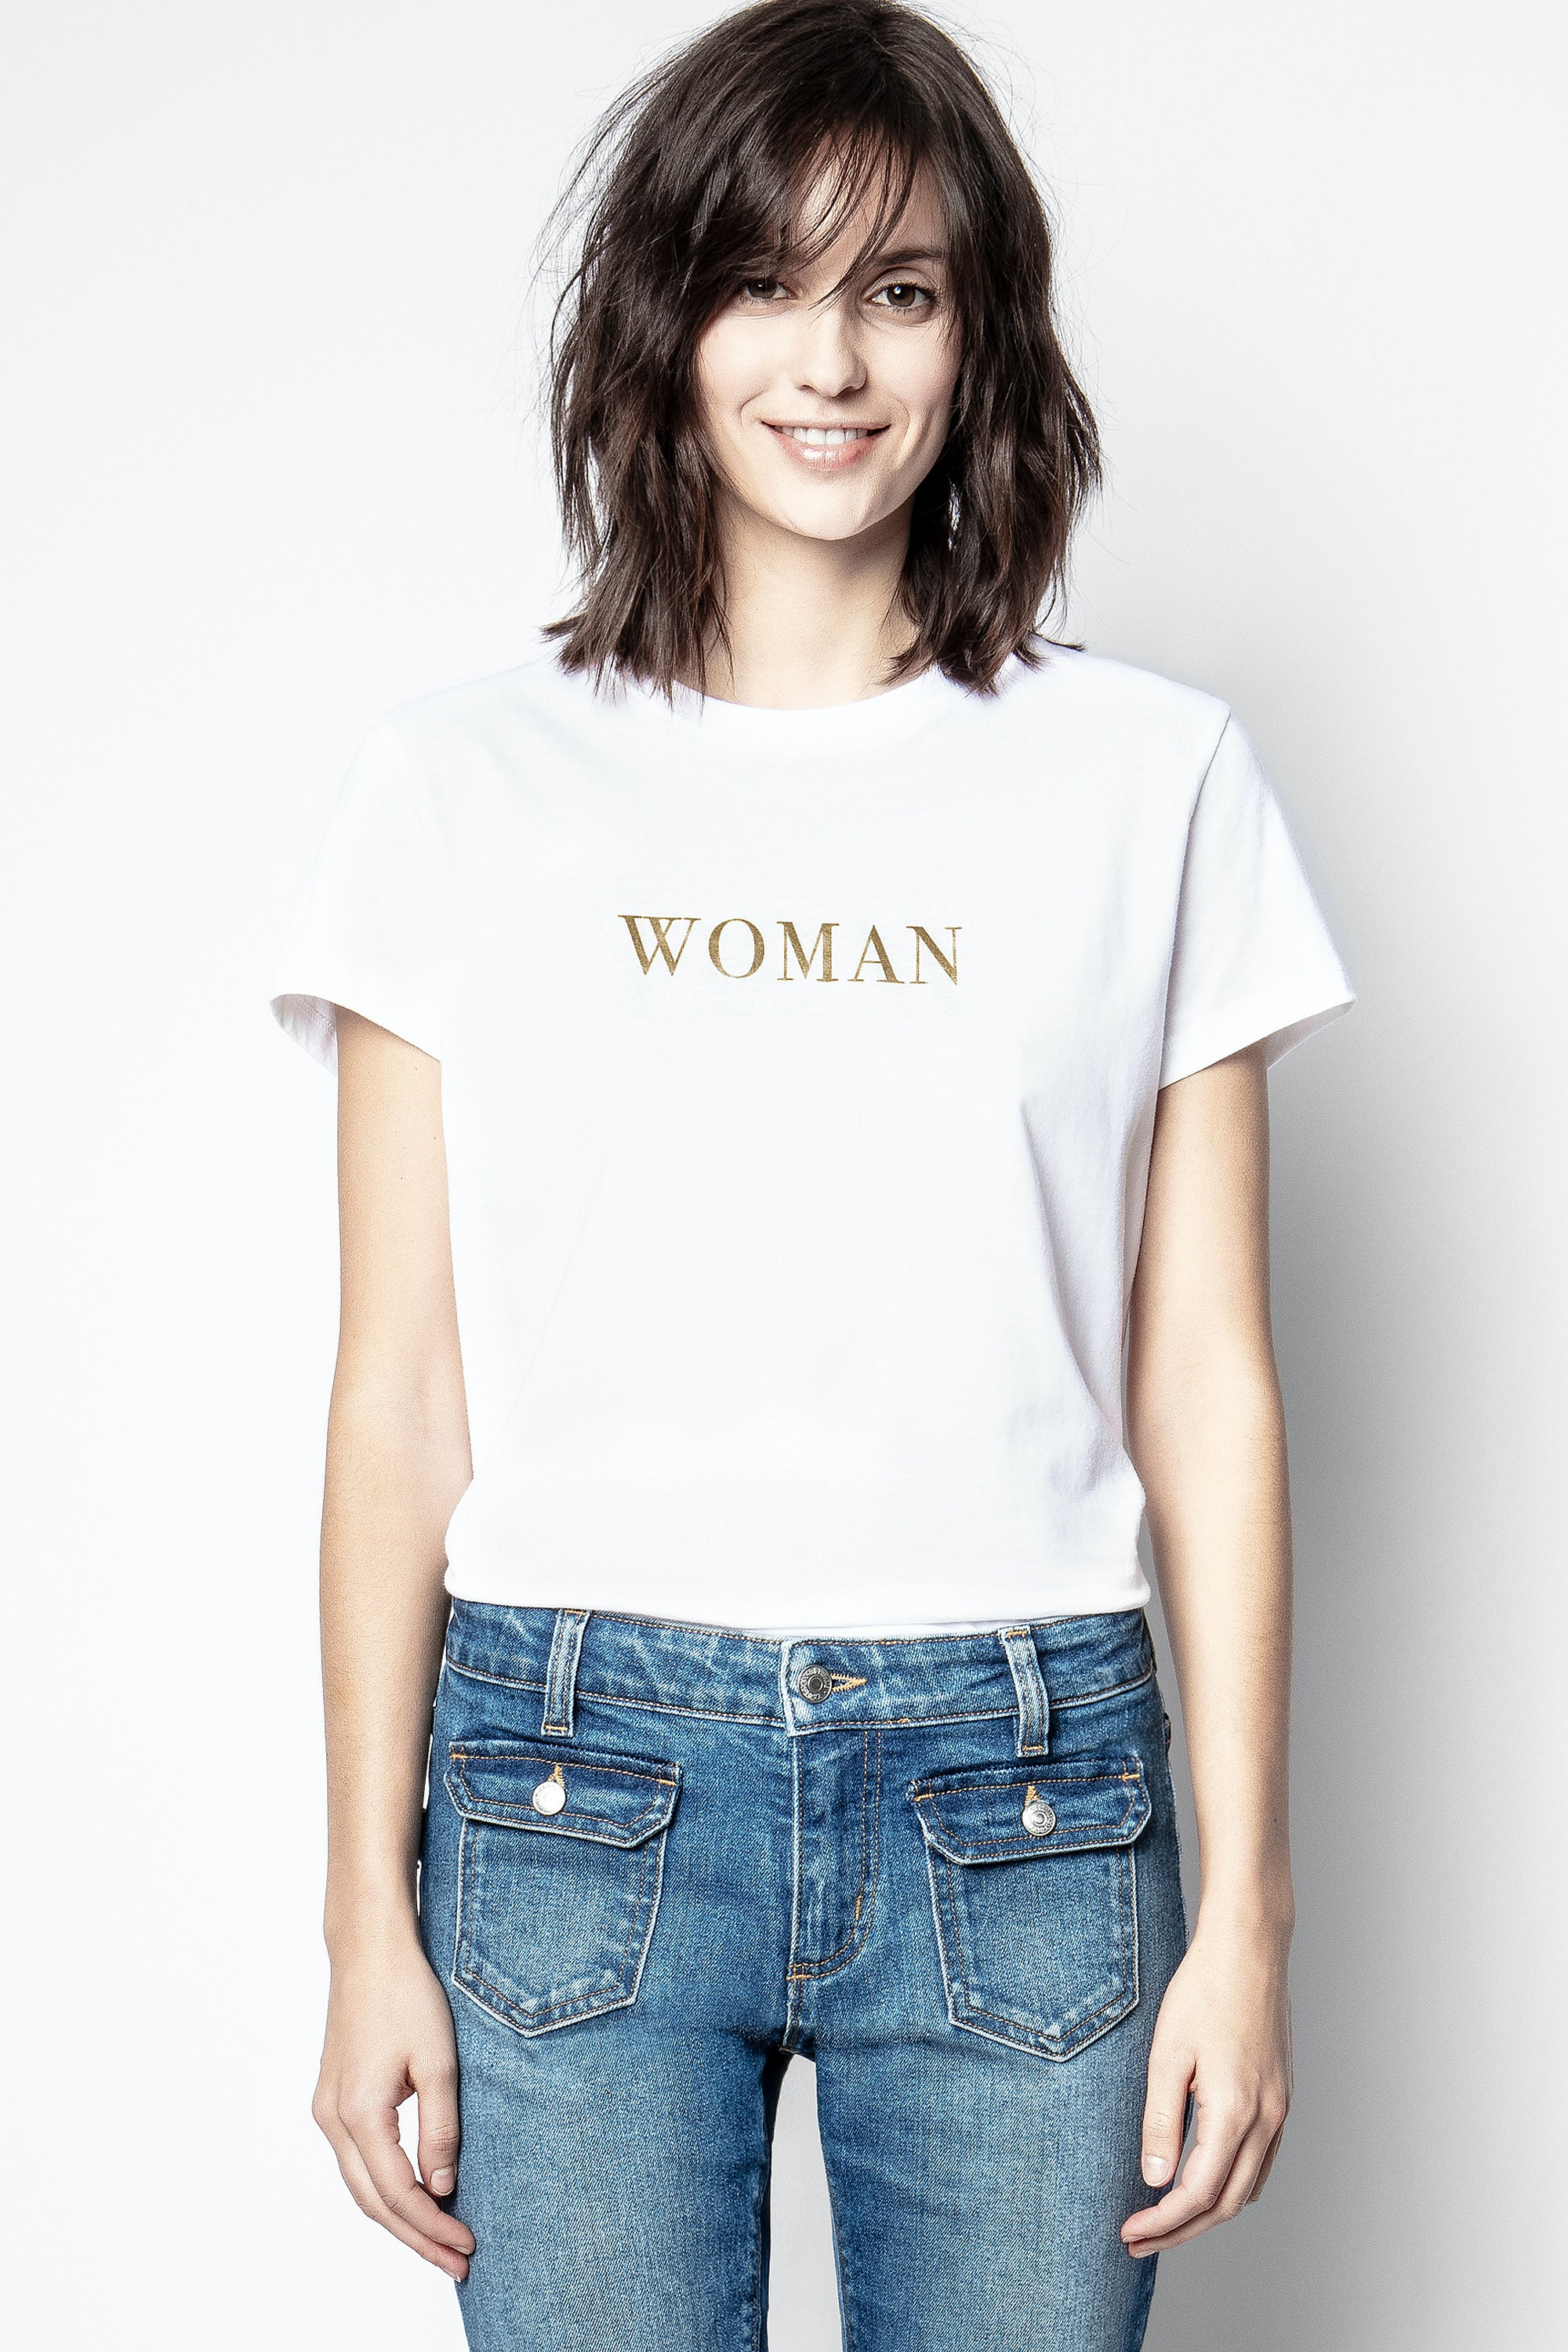 Zoe Citation T-shirt